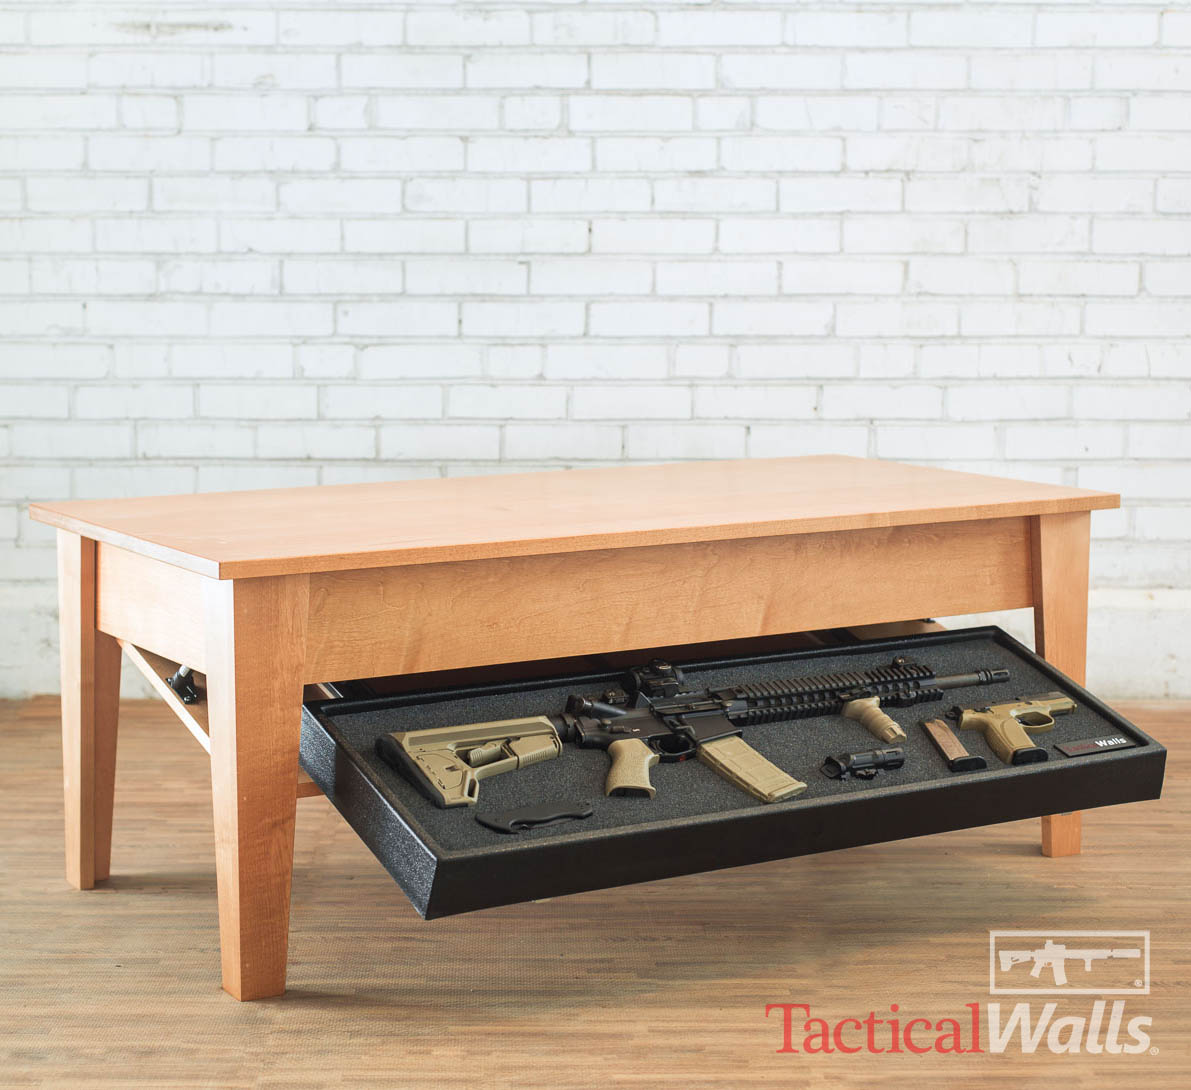 Gun Storage Coffee Table Plans: Tactical Walls Coffee Table